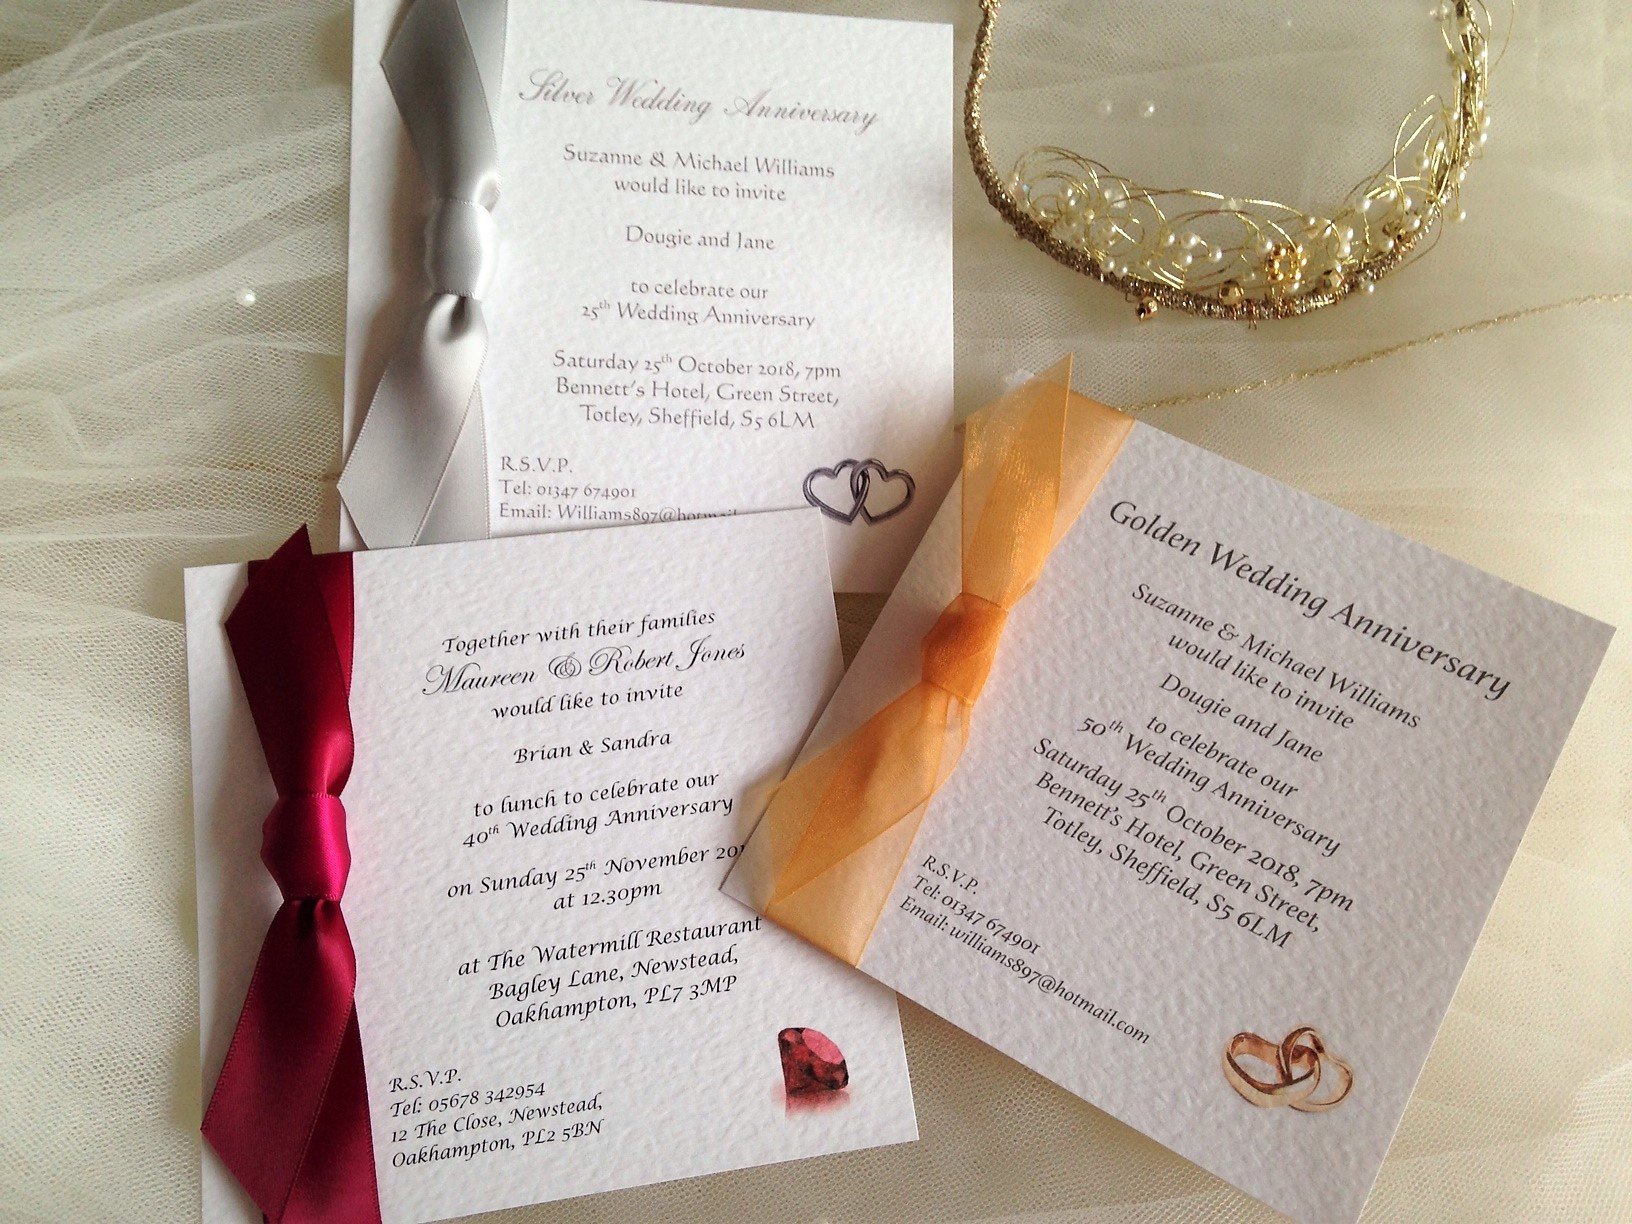 Wedding Anniversary Invitations from 60p each, fast delivery